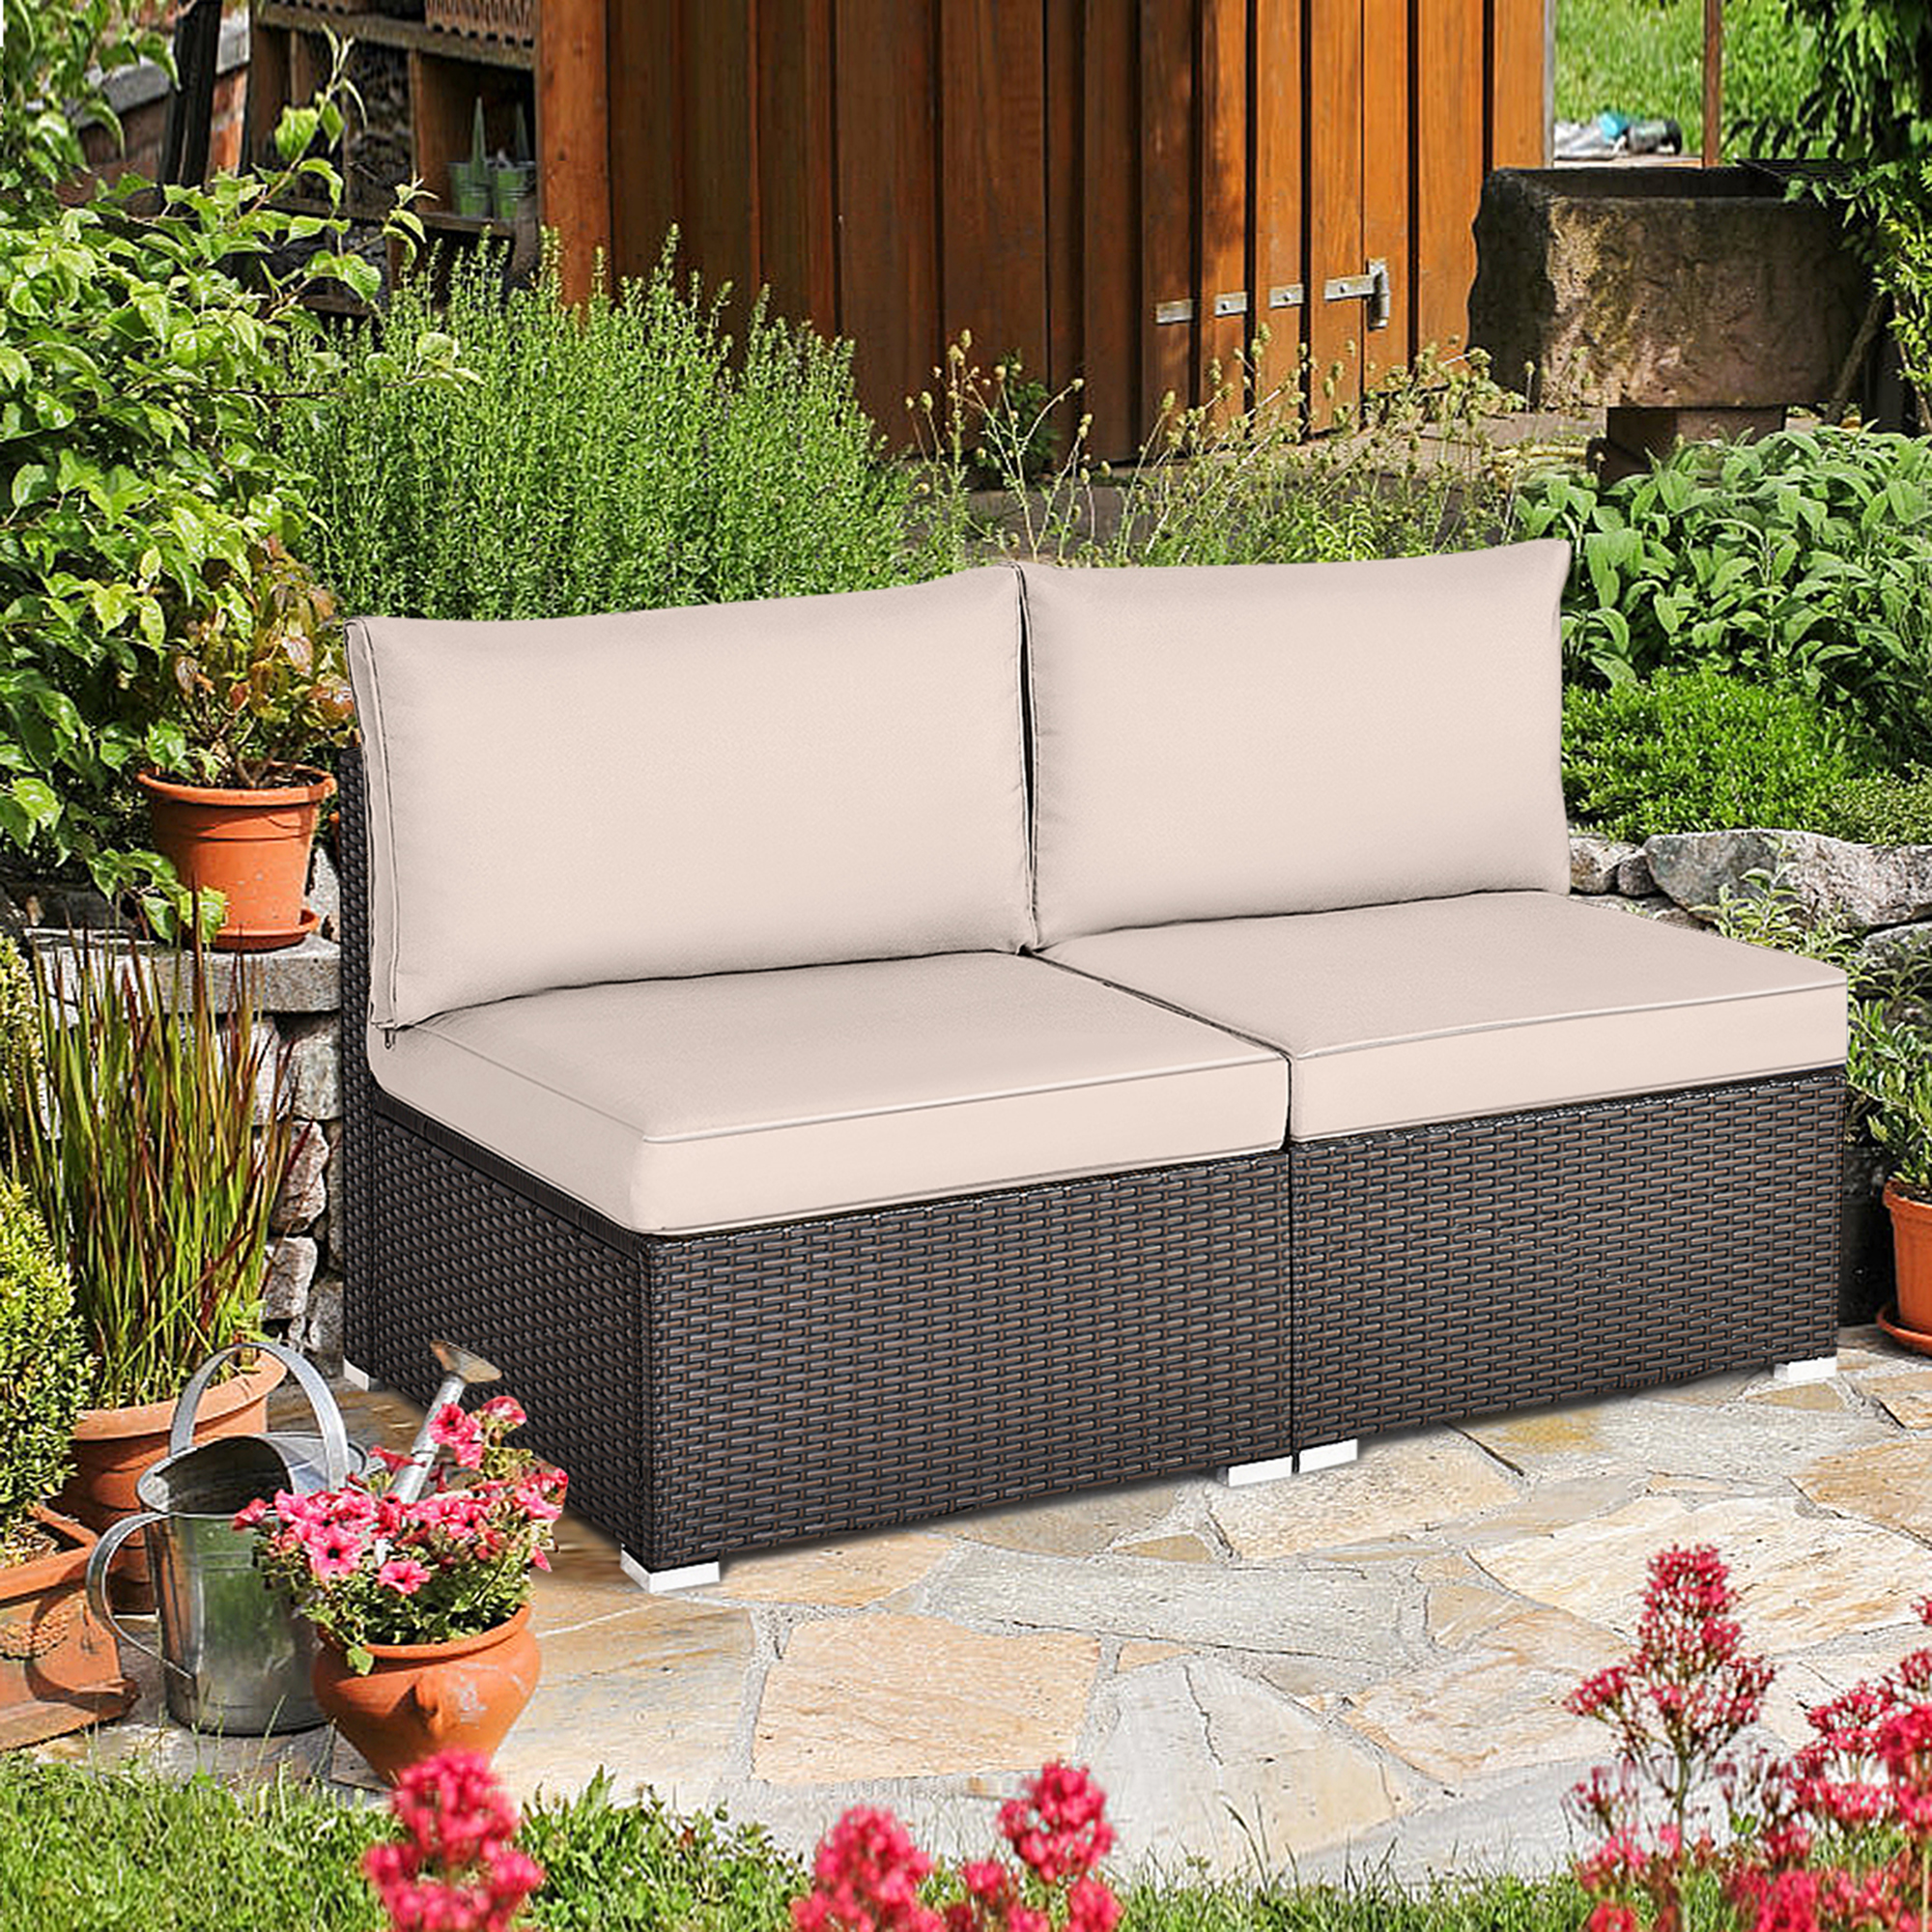 Gymax 2PCS Patio Sectional Armless Sofas Outdoor Rattan ...